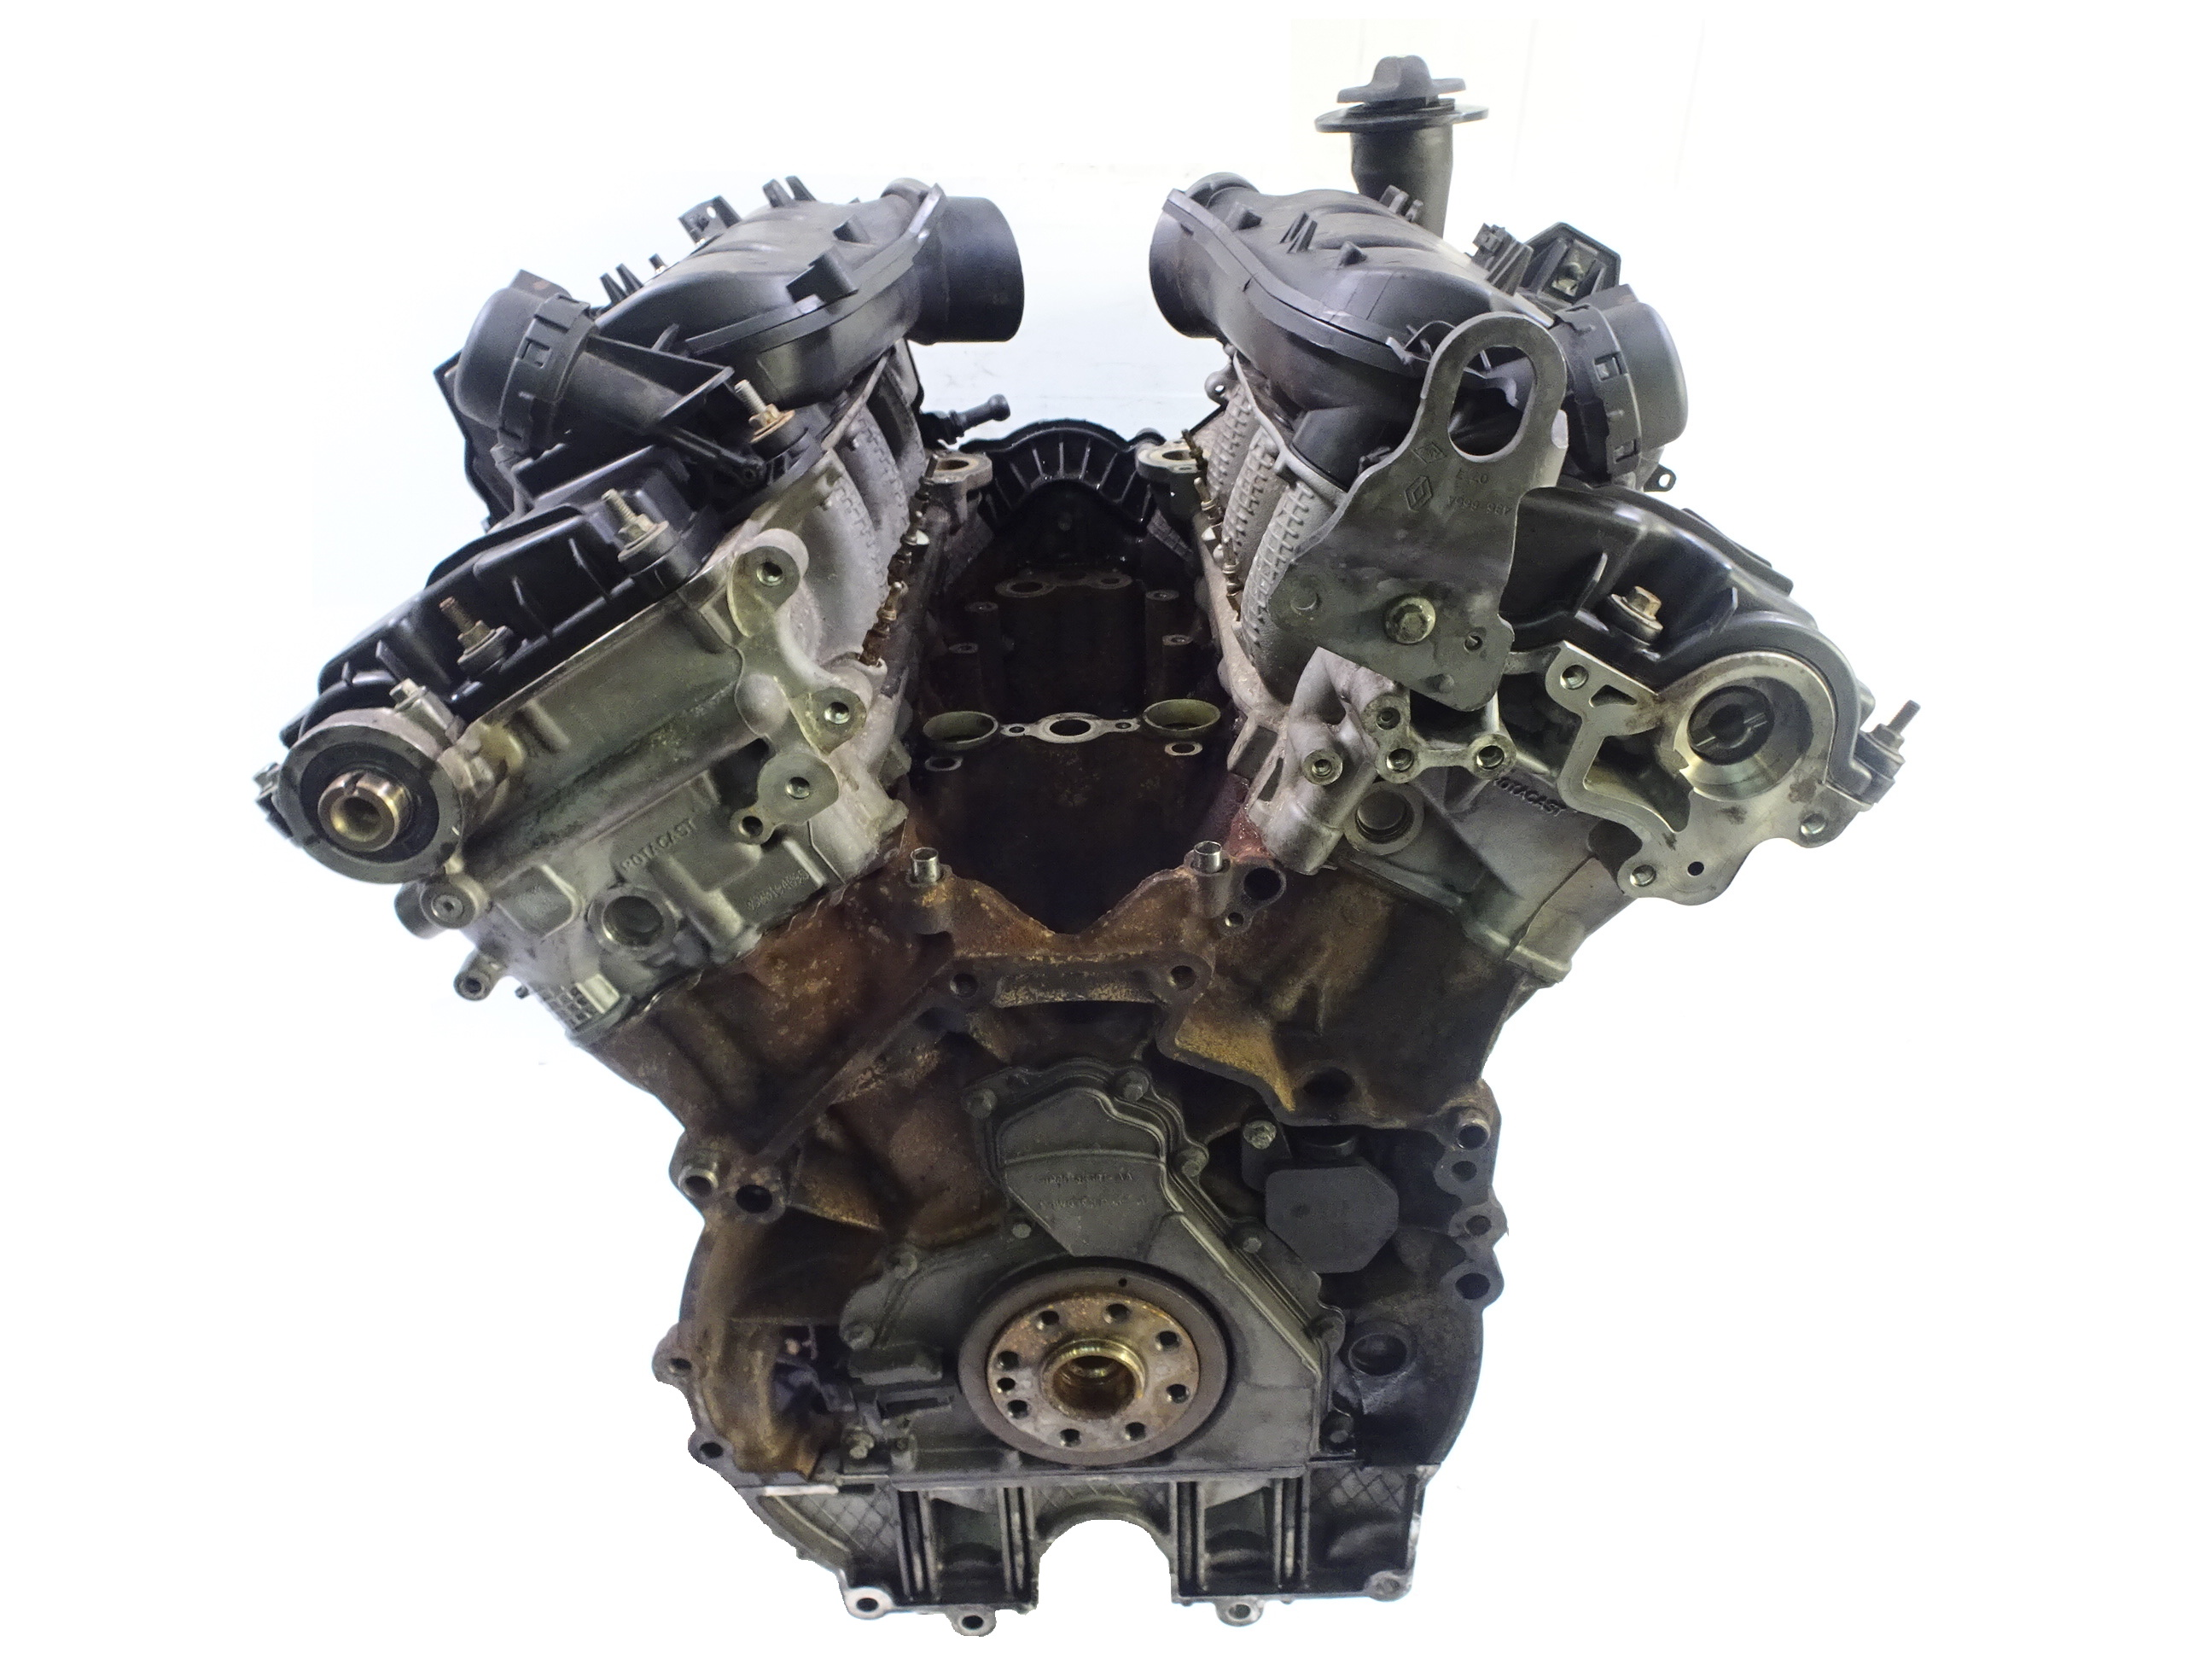 Motor 2008 Citroen Peugeot C5 C6 407 2,7 HDi Diesel UHZ DT17TED4 204 PS